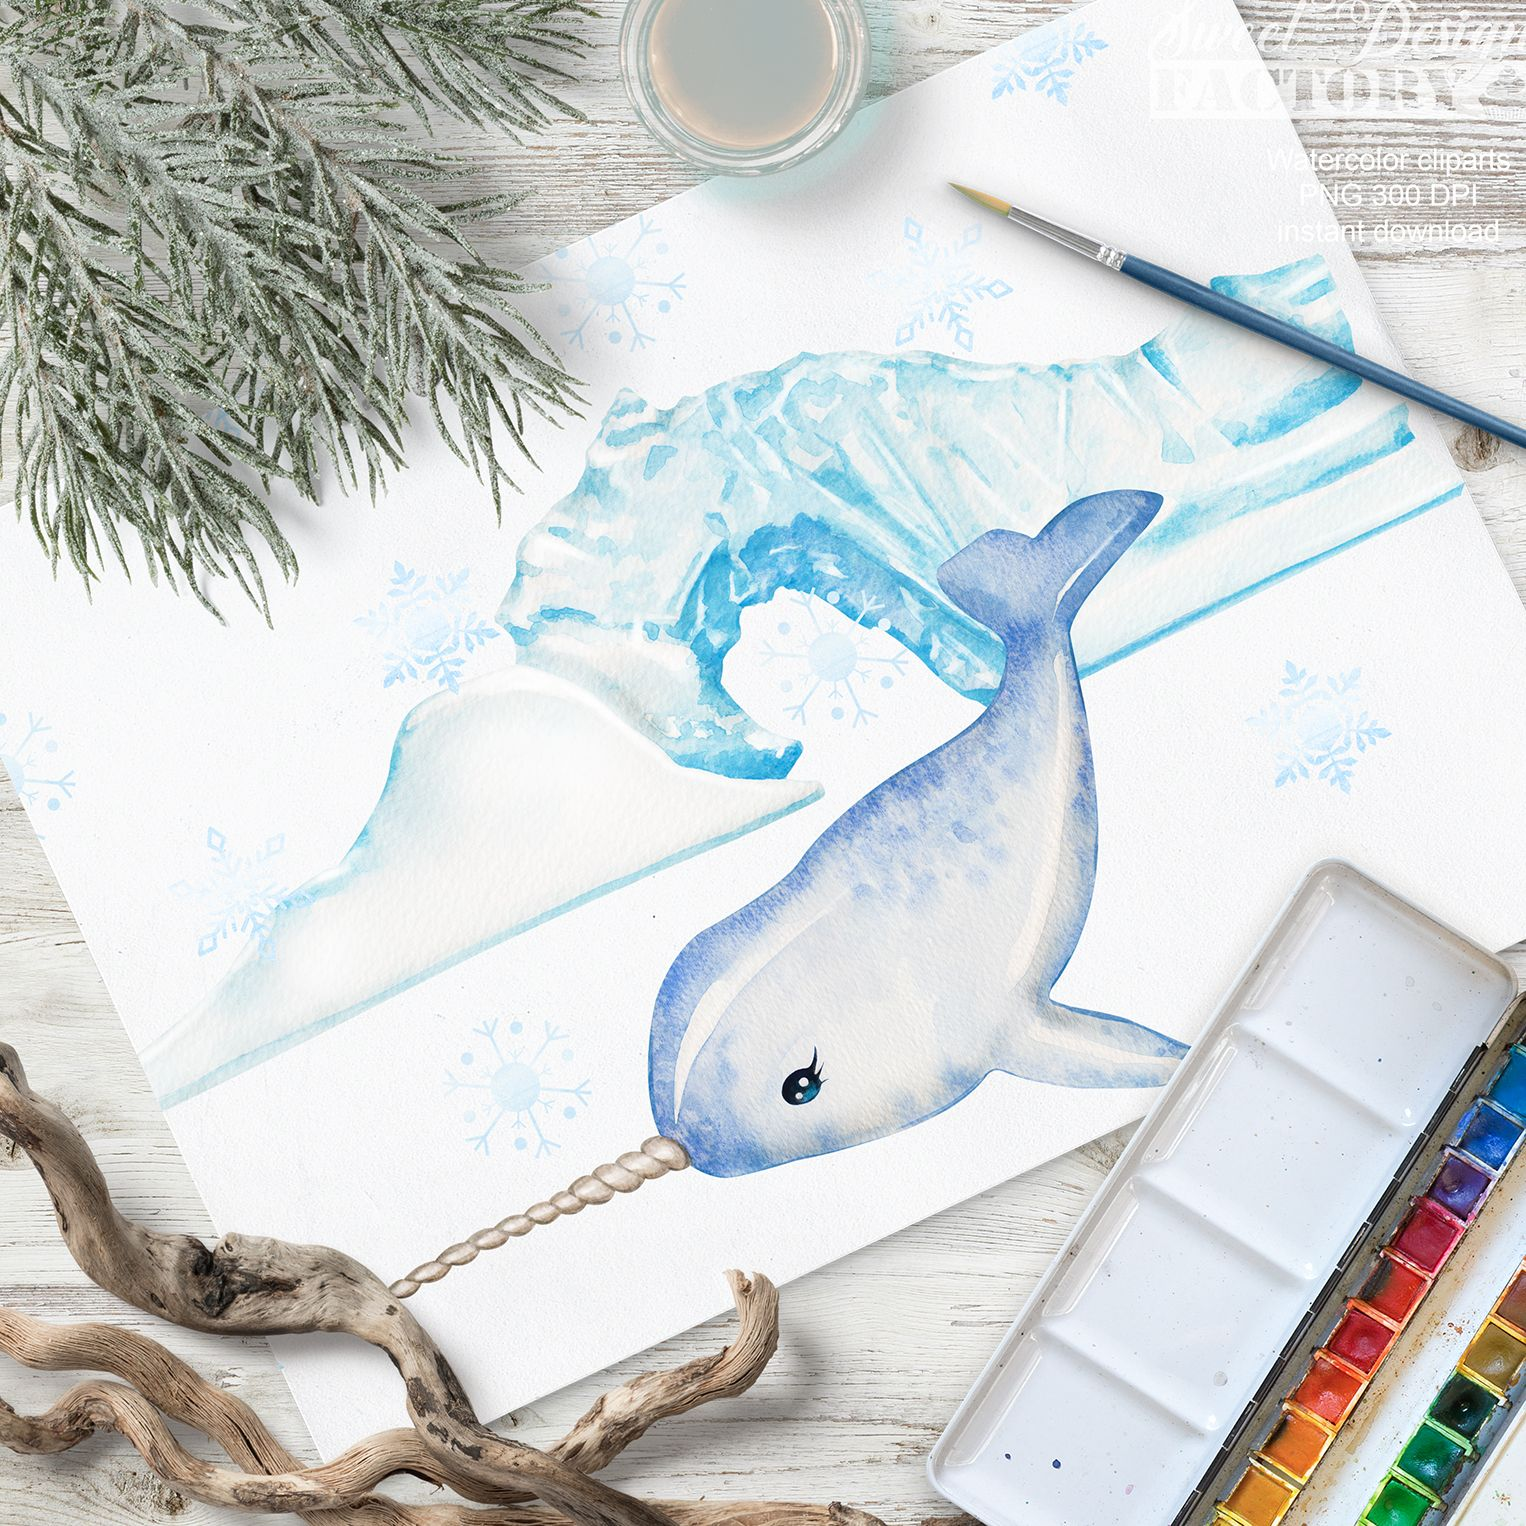 Clipart Arctique A L Aquarelle Animal Artique Animal Polaire